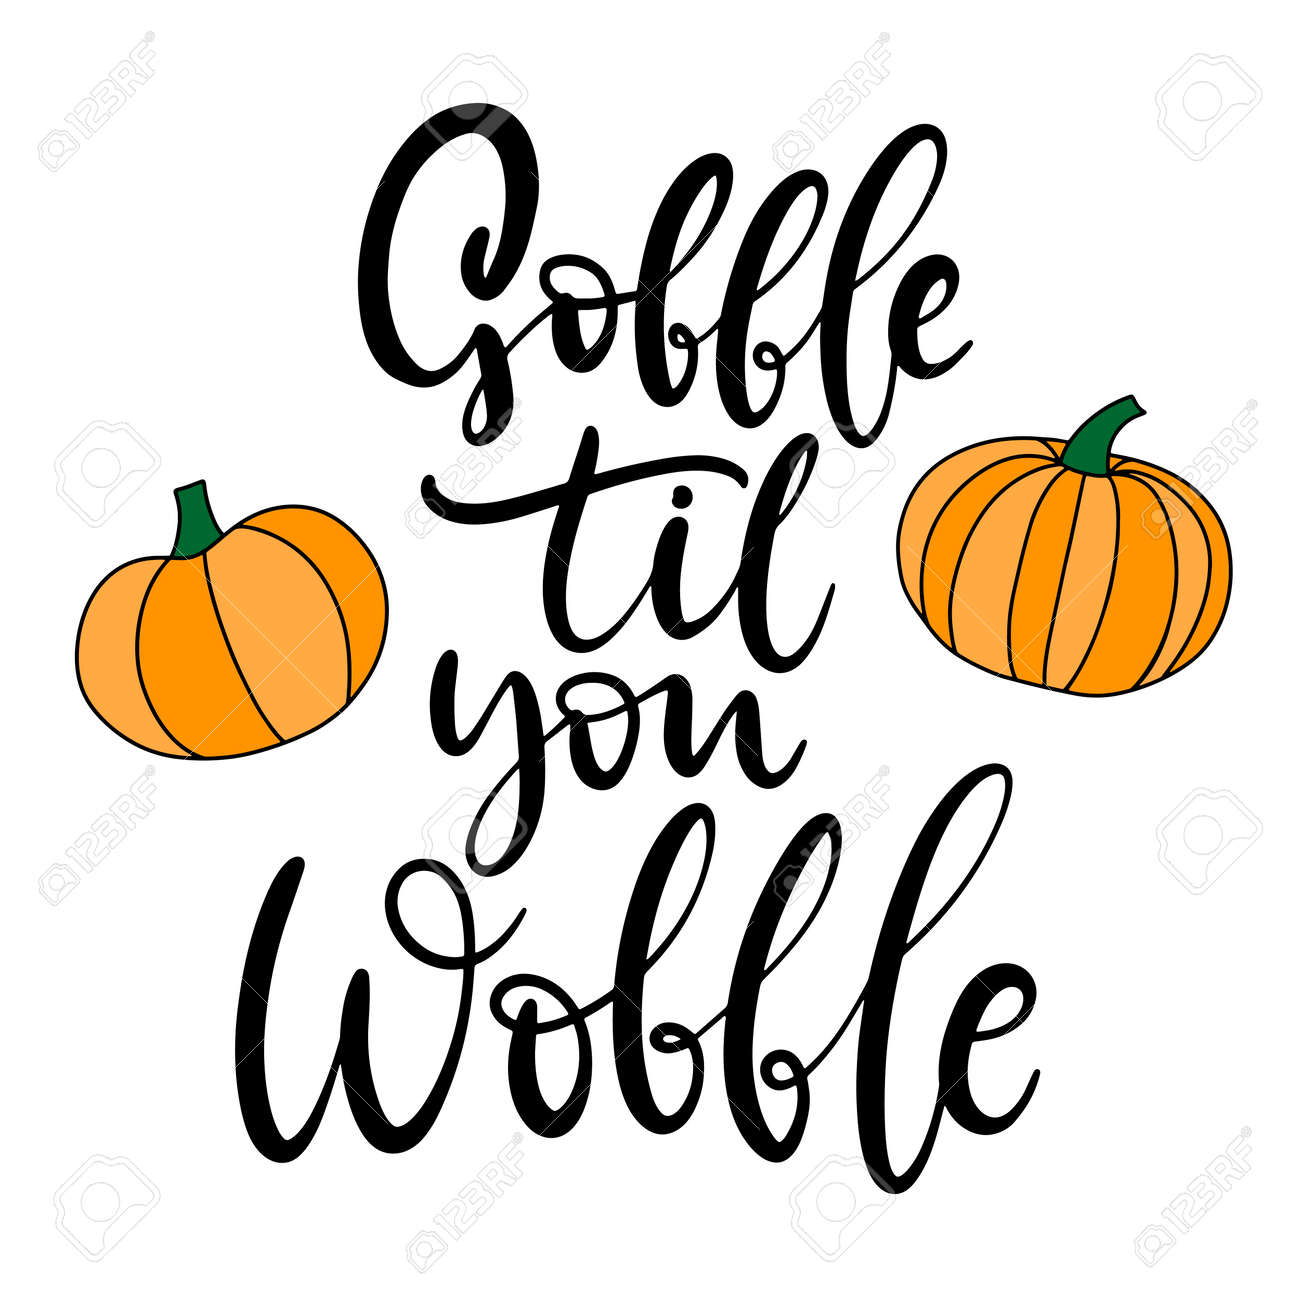 Gobble til you wobble. Happy Thanksgiving lettering. Calligraphic holiday quote for poster, banner, greeting postcard, print, badge. Vector illustration eps10 - 142305886